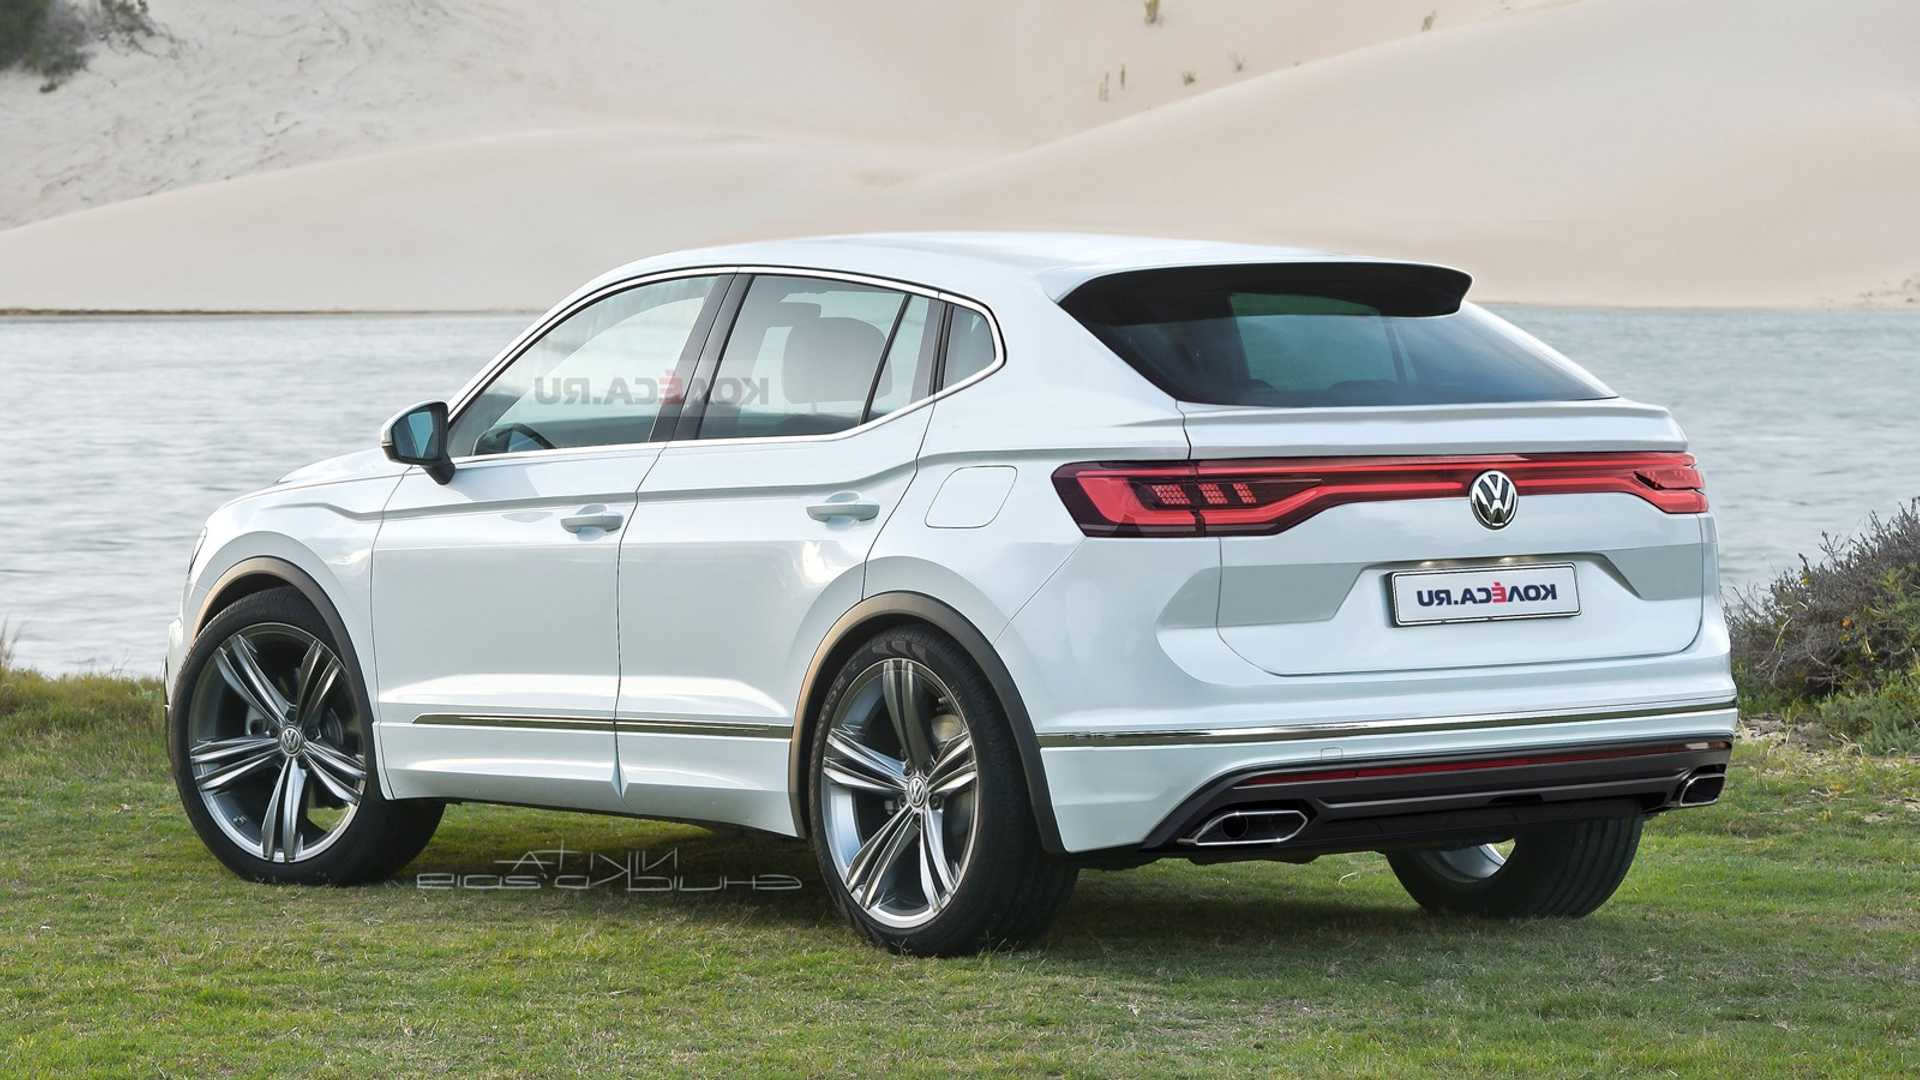 2022 Vw Tiguan Imagined With Coupe Influences